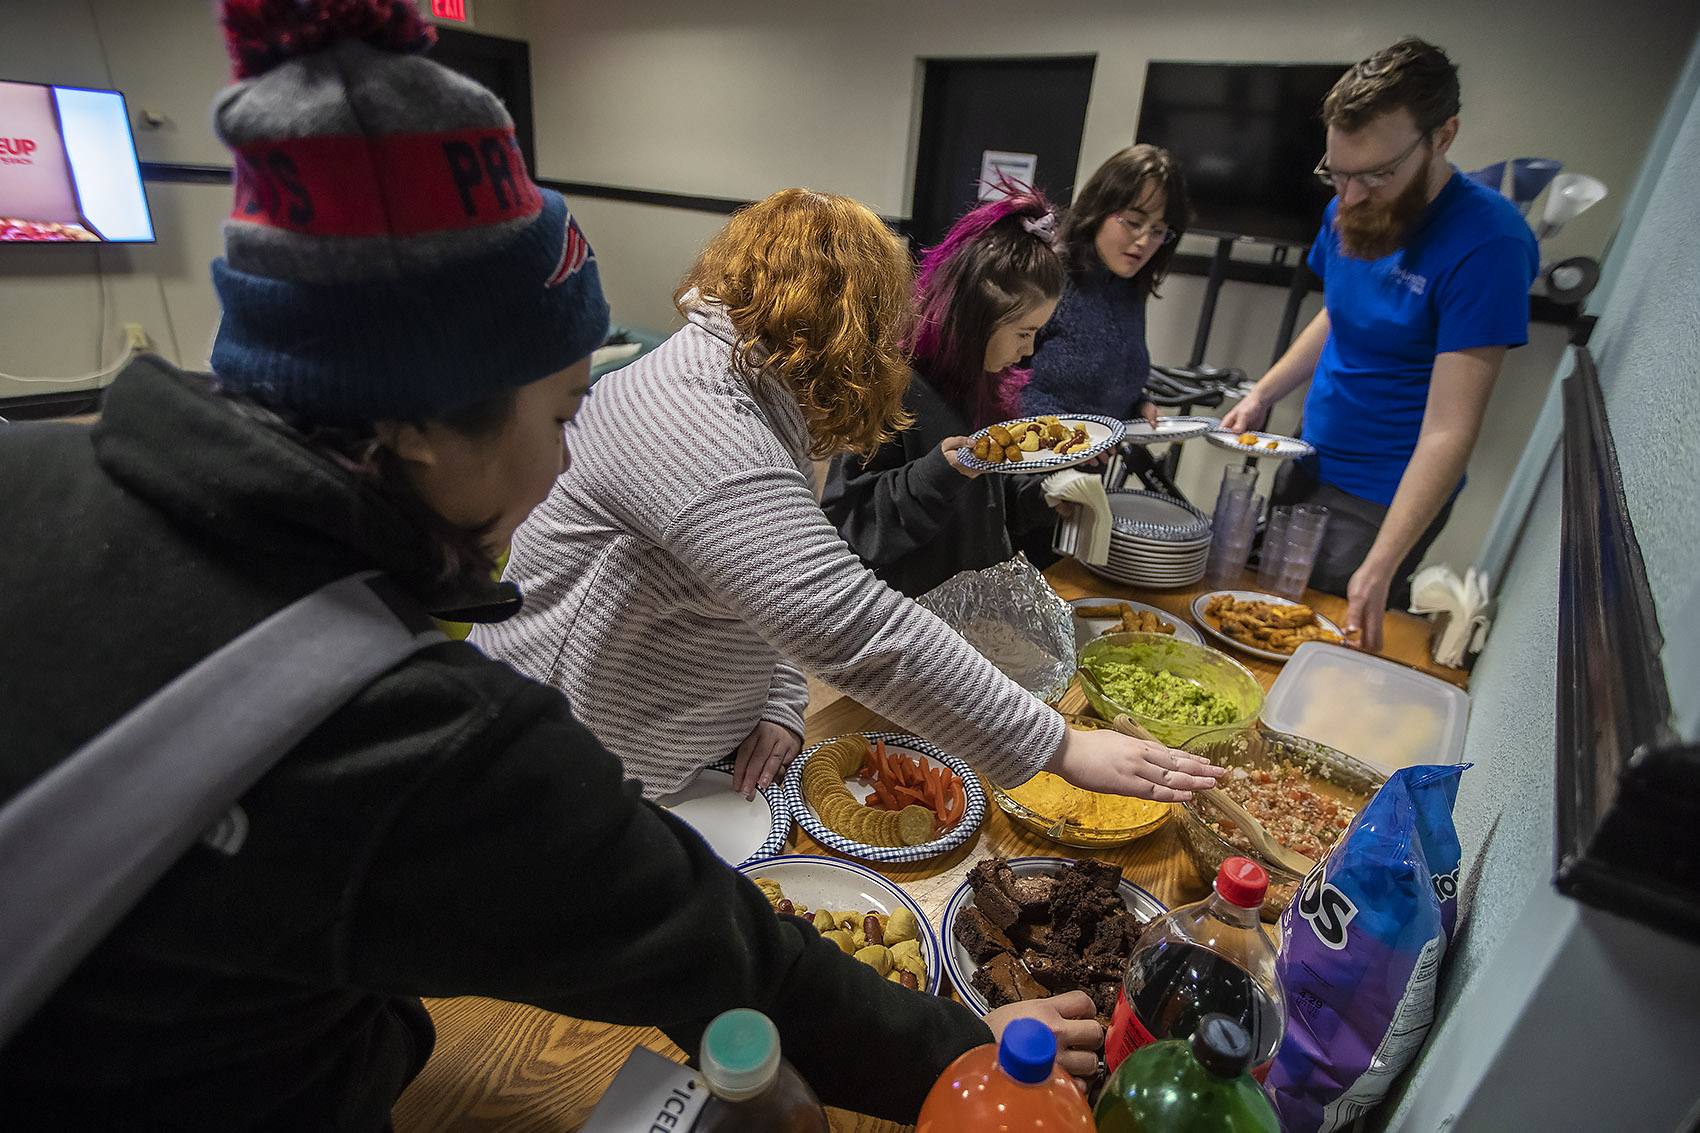 Everyone begins to dig into the food they prepared before the game begins. (Jesse Costa/WBUR)